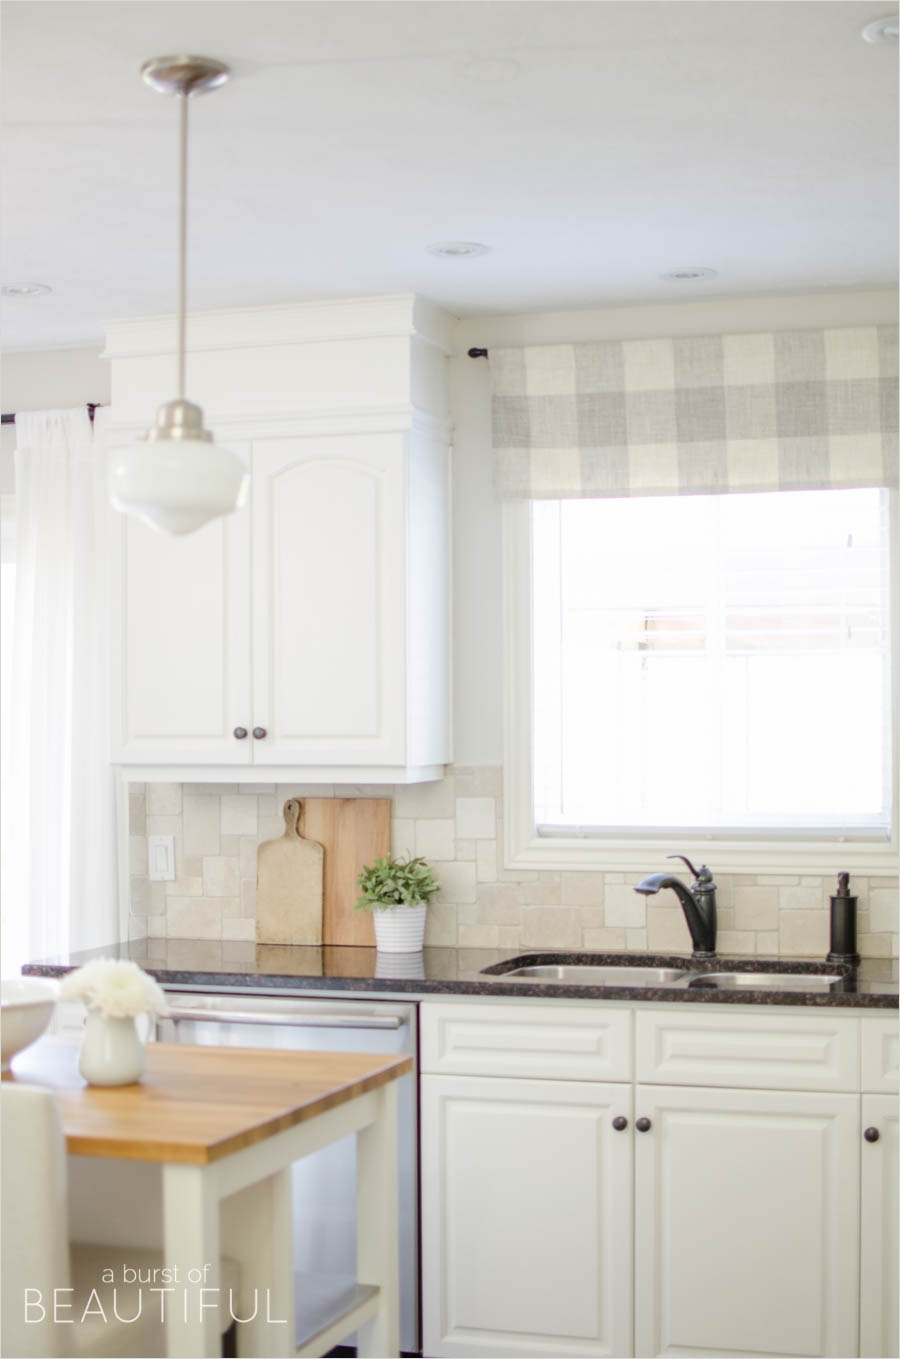 41 Perfect Farmhouse Country Kitchen Curtain Valances 88 Farmhouse Kitchen Window Valance Tutorial A Burst Of Beautiful 7